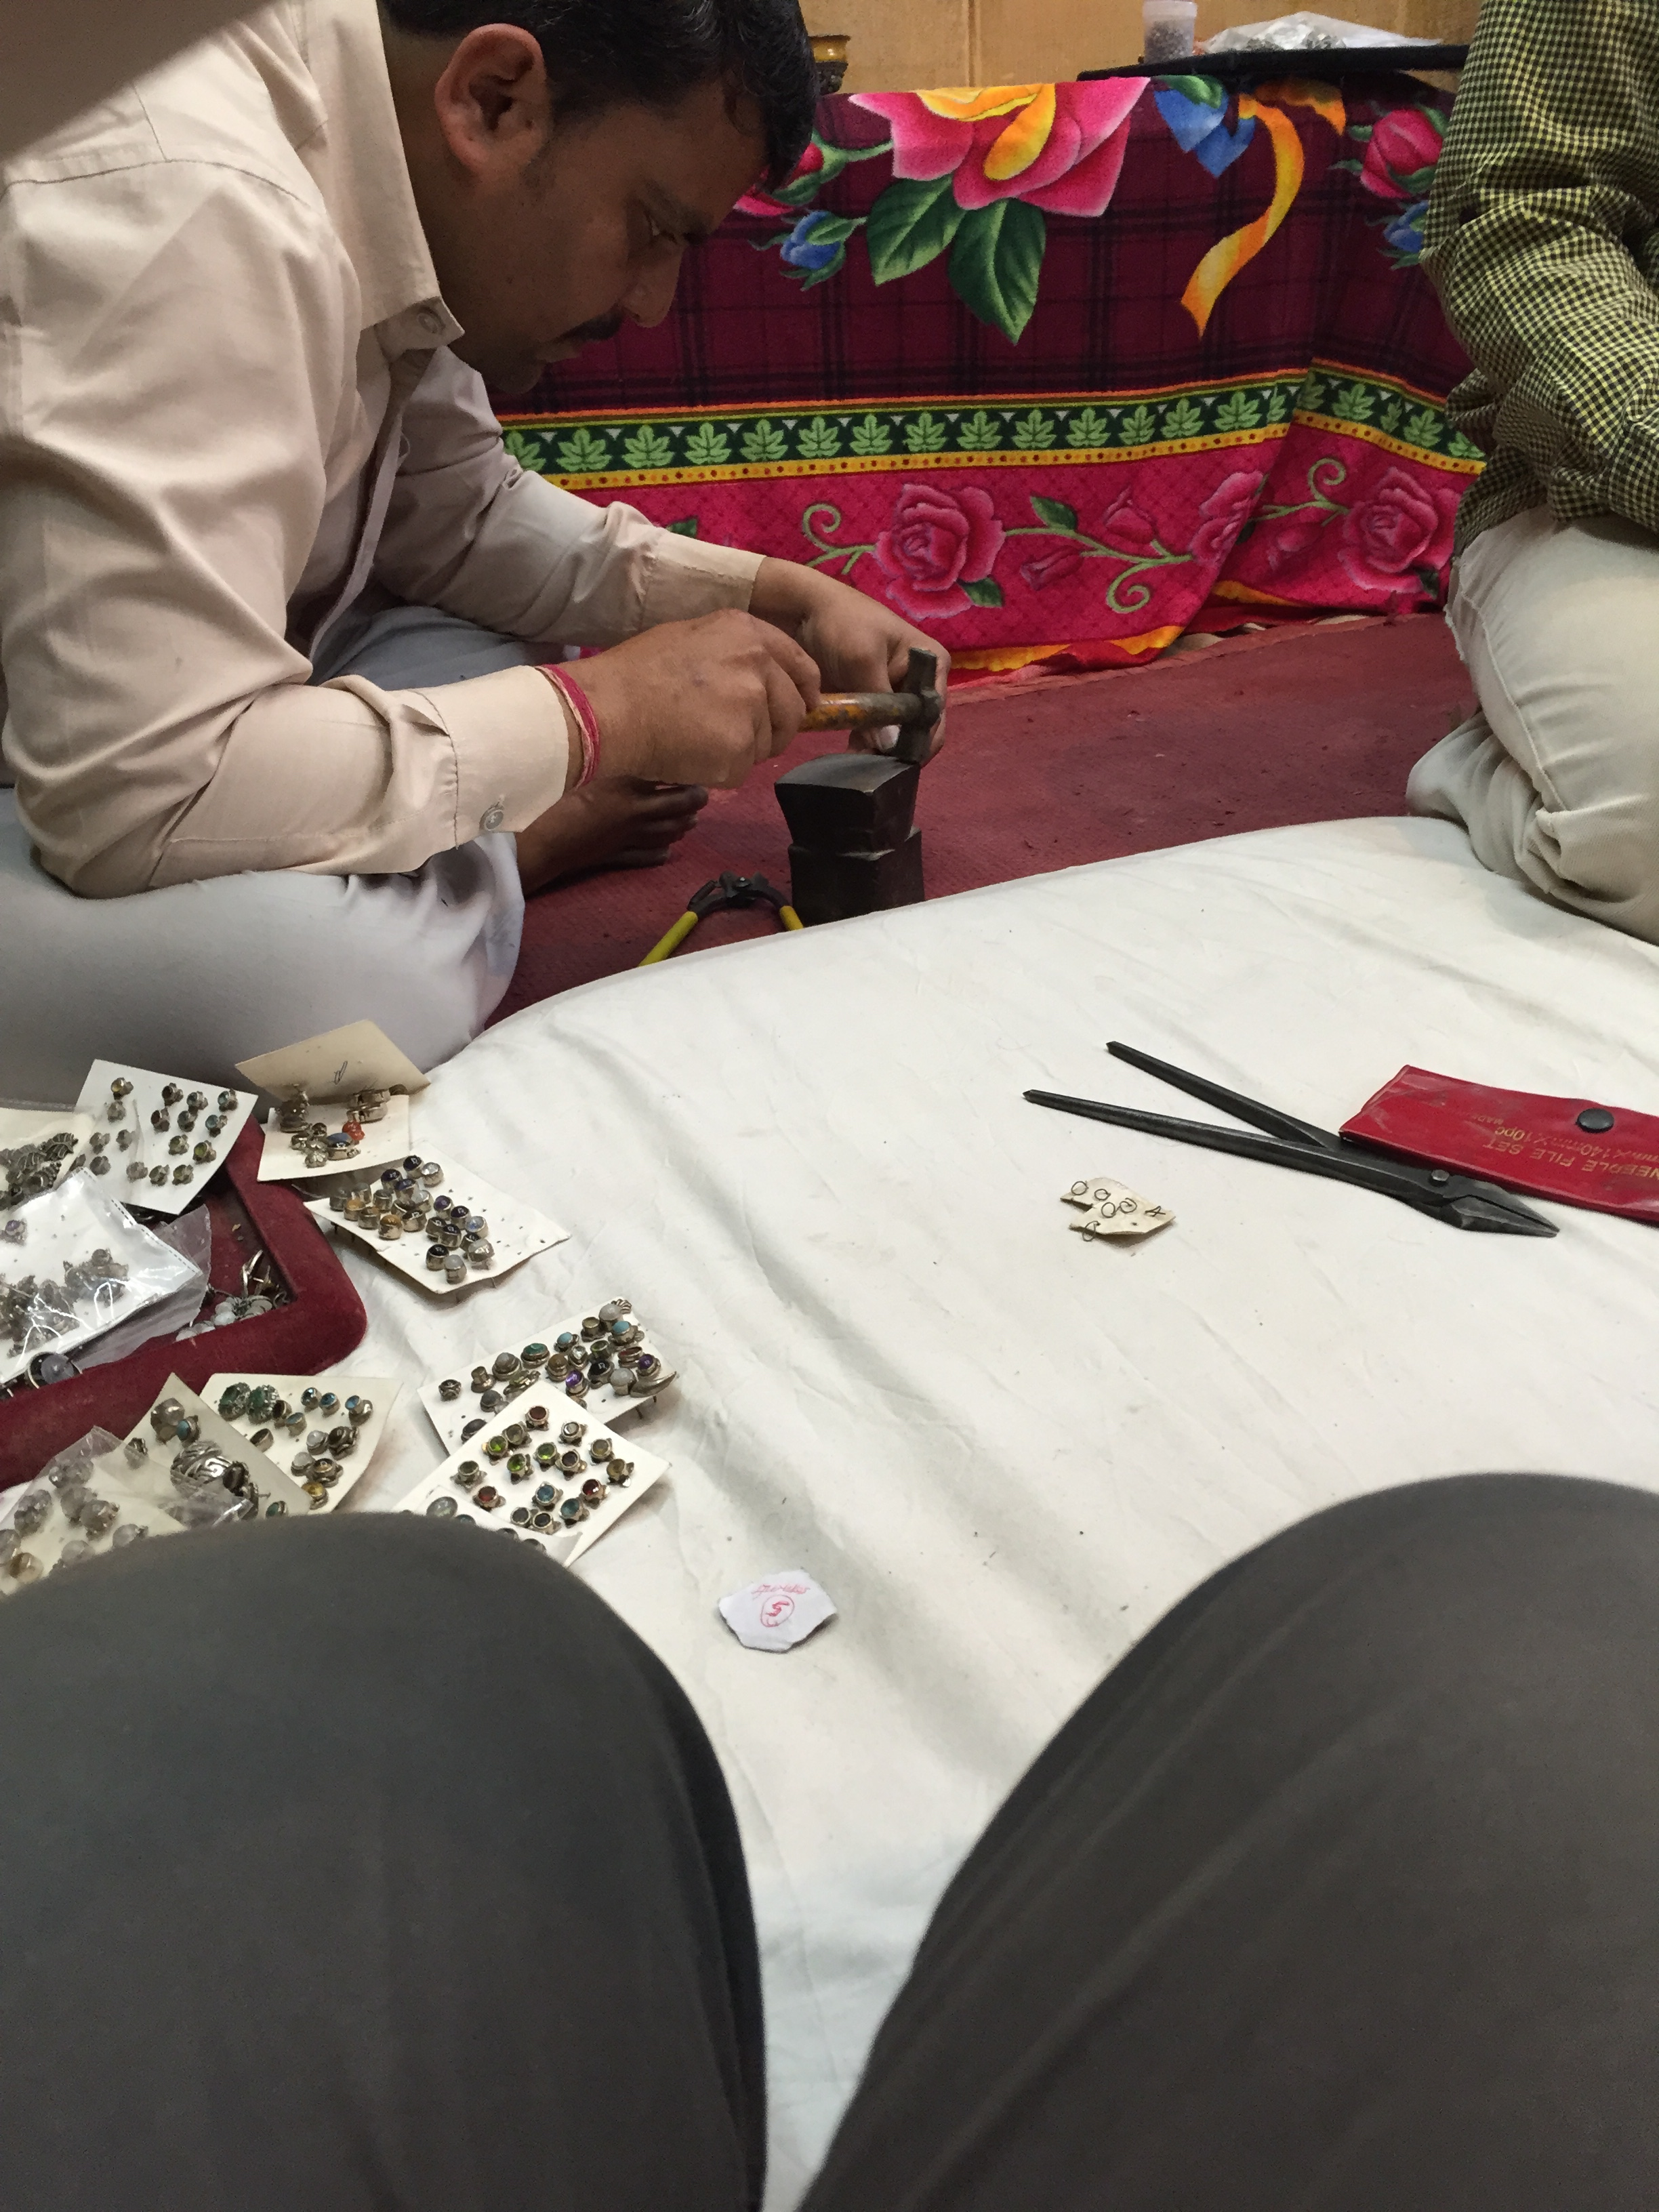 The earrings being hammered and filed to sharpen the ends.